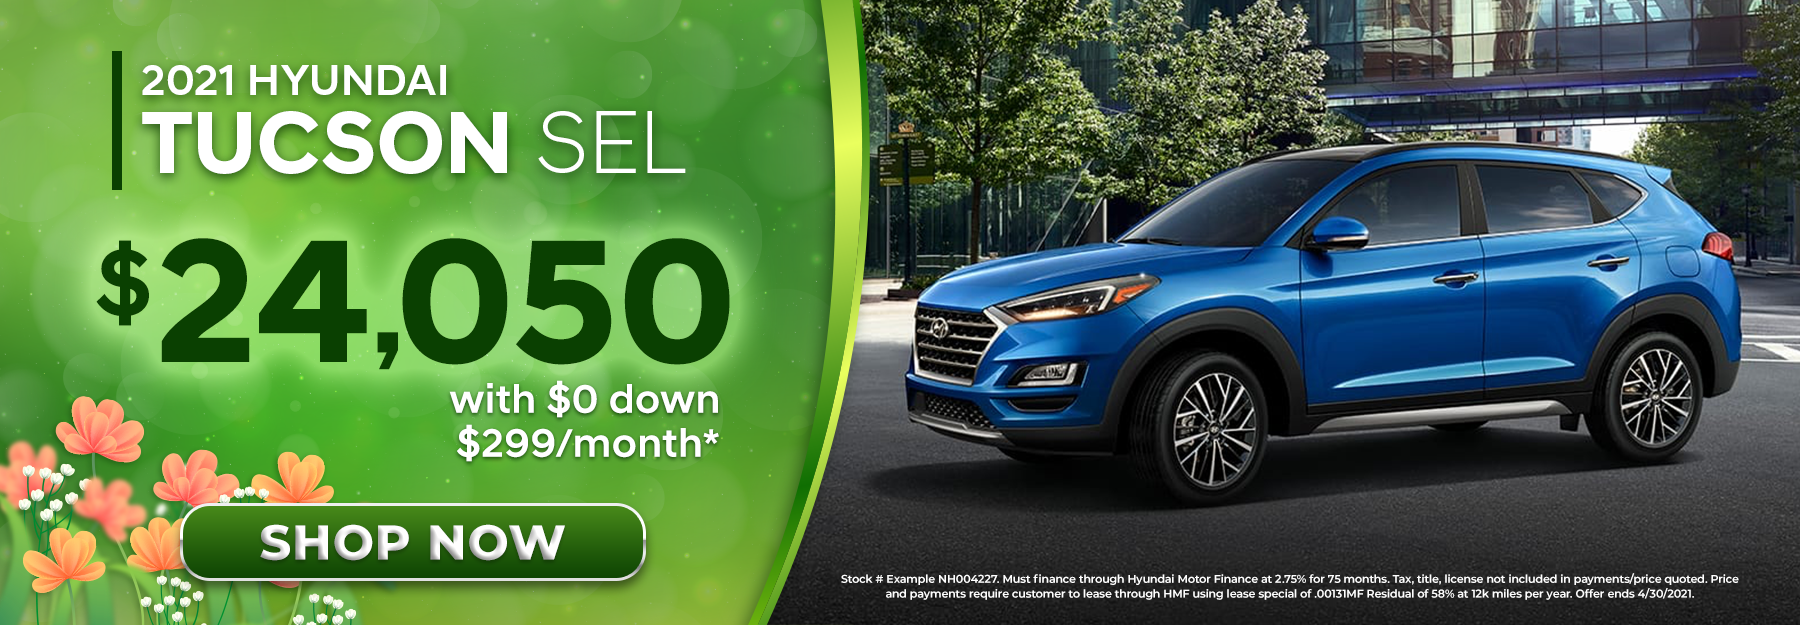 2022 Hyundai Tucson SEL With $0 Down, $299/Month